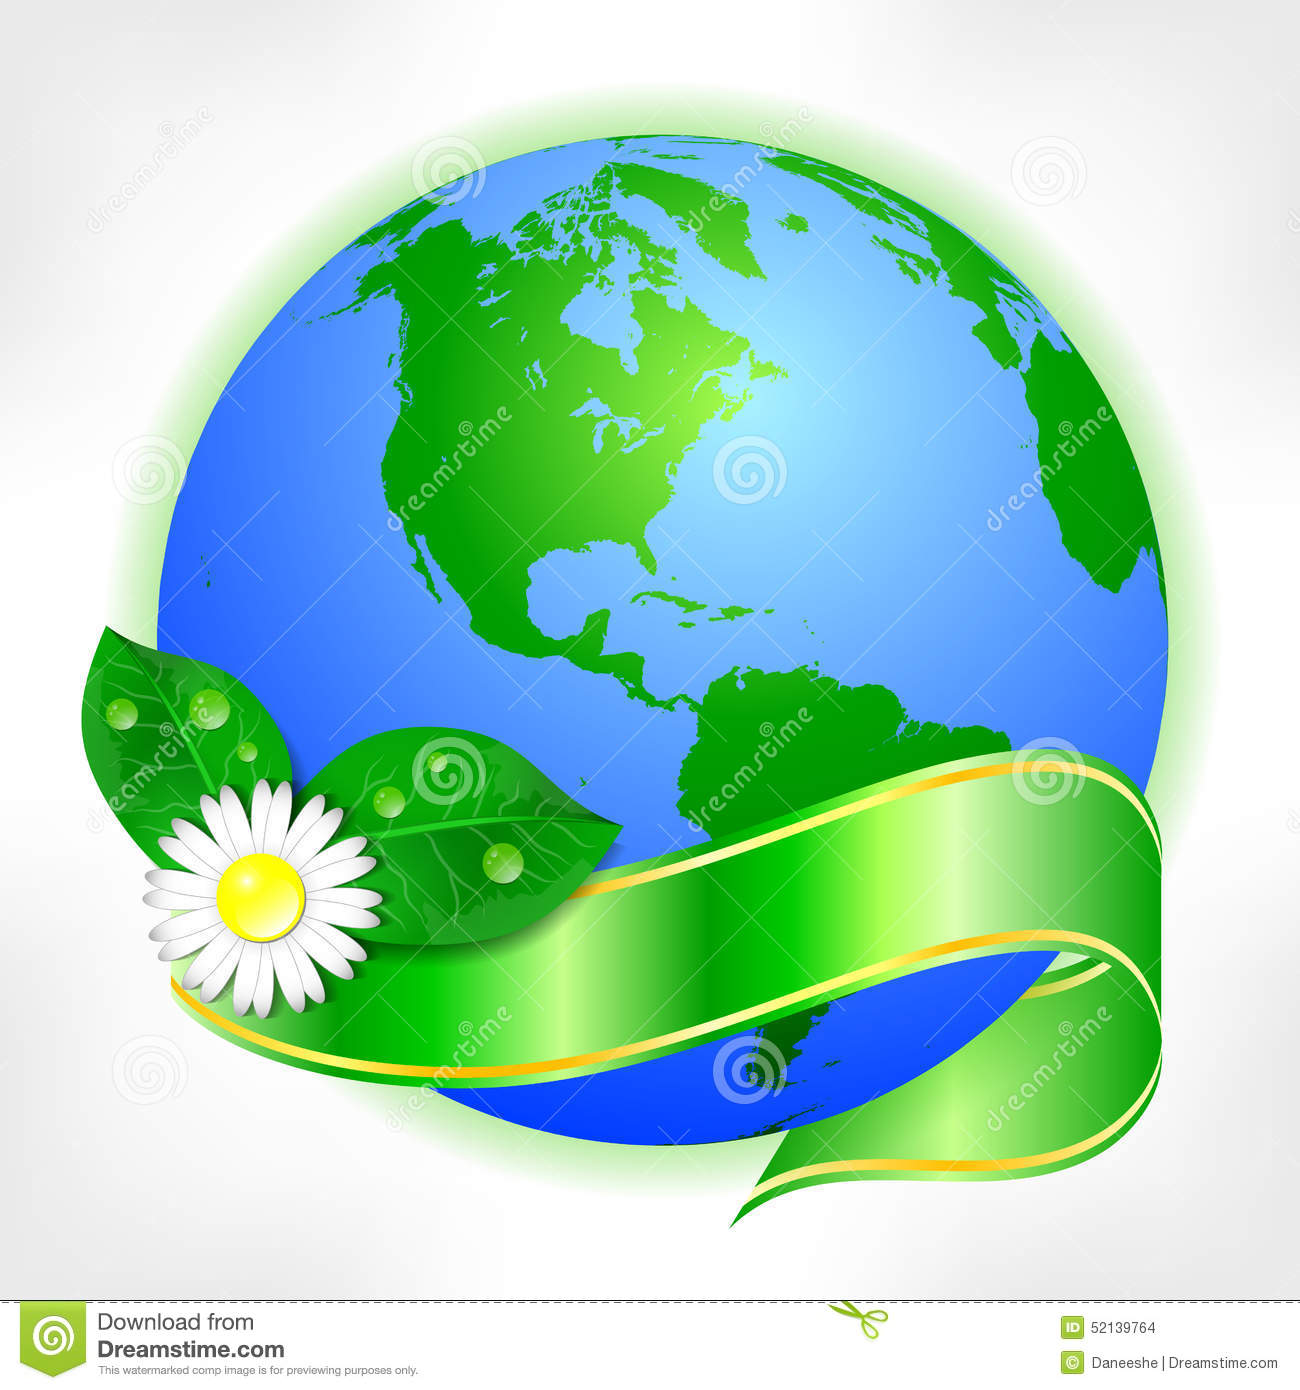 Postcard On April 22 - Earth Day. Globe With Green Ribbon And Flower ...